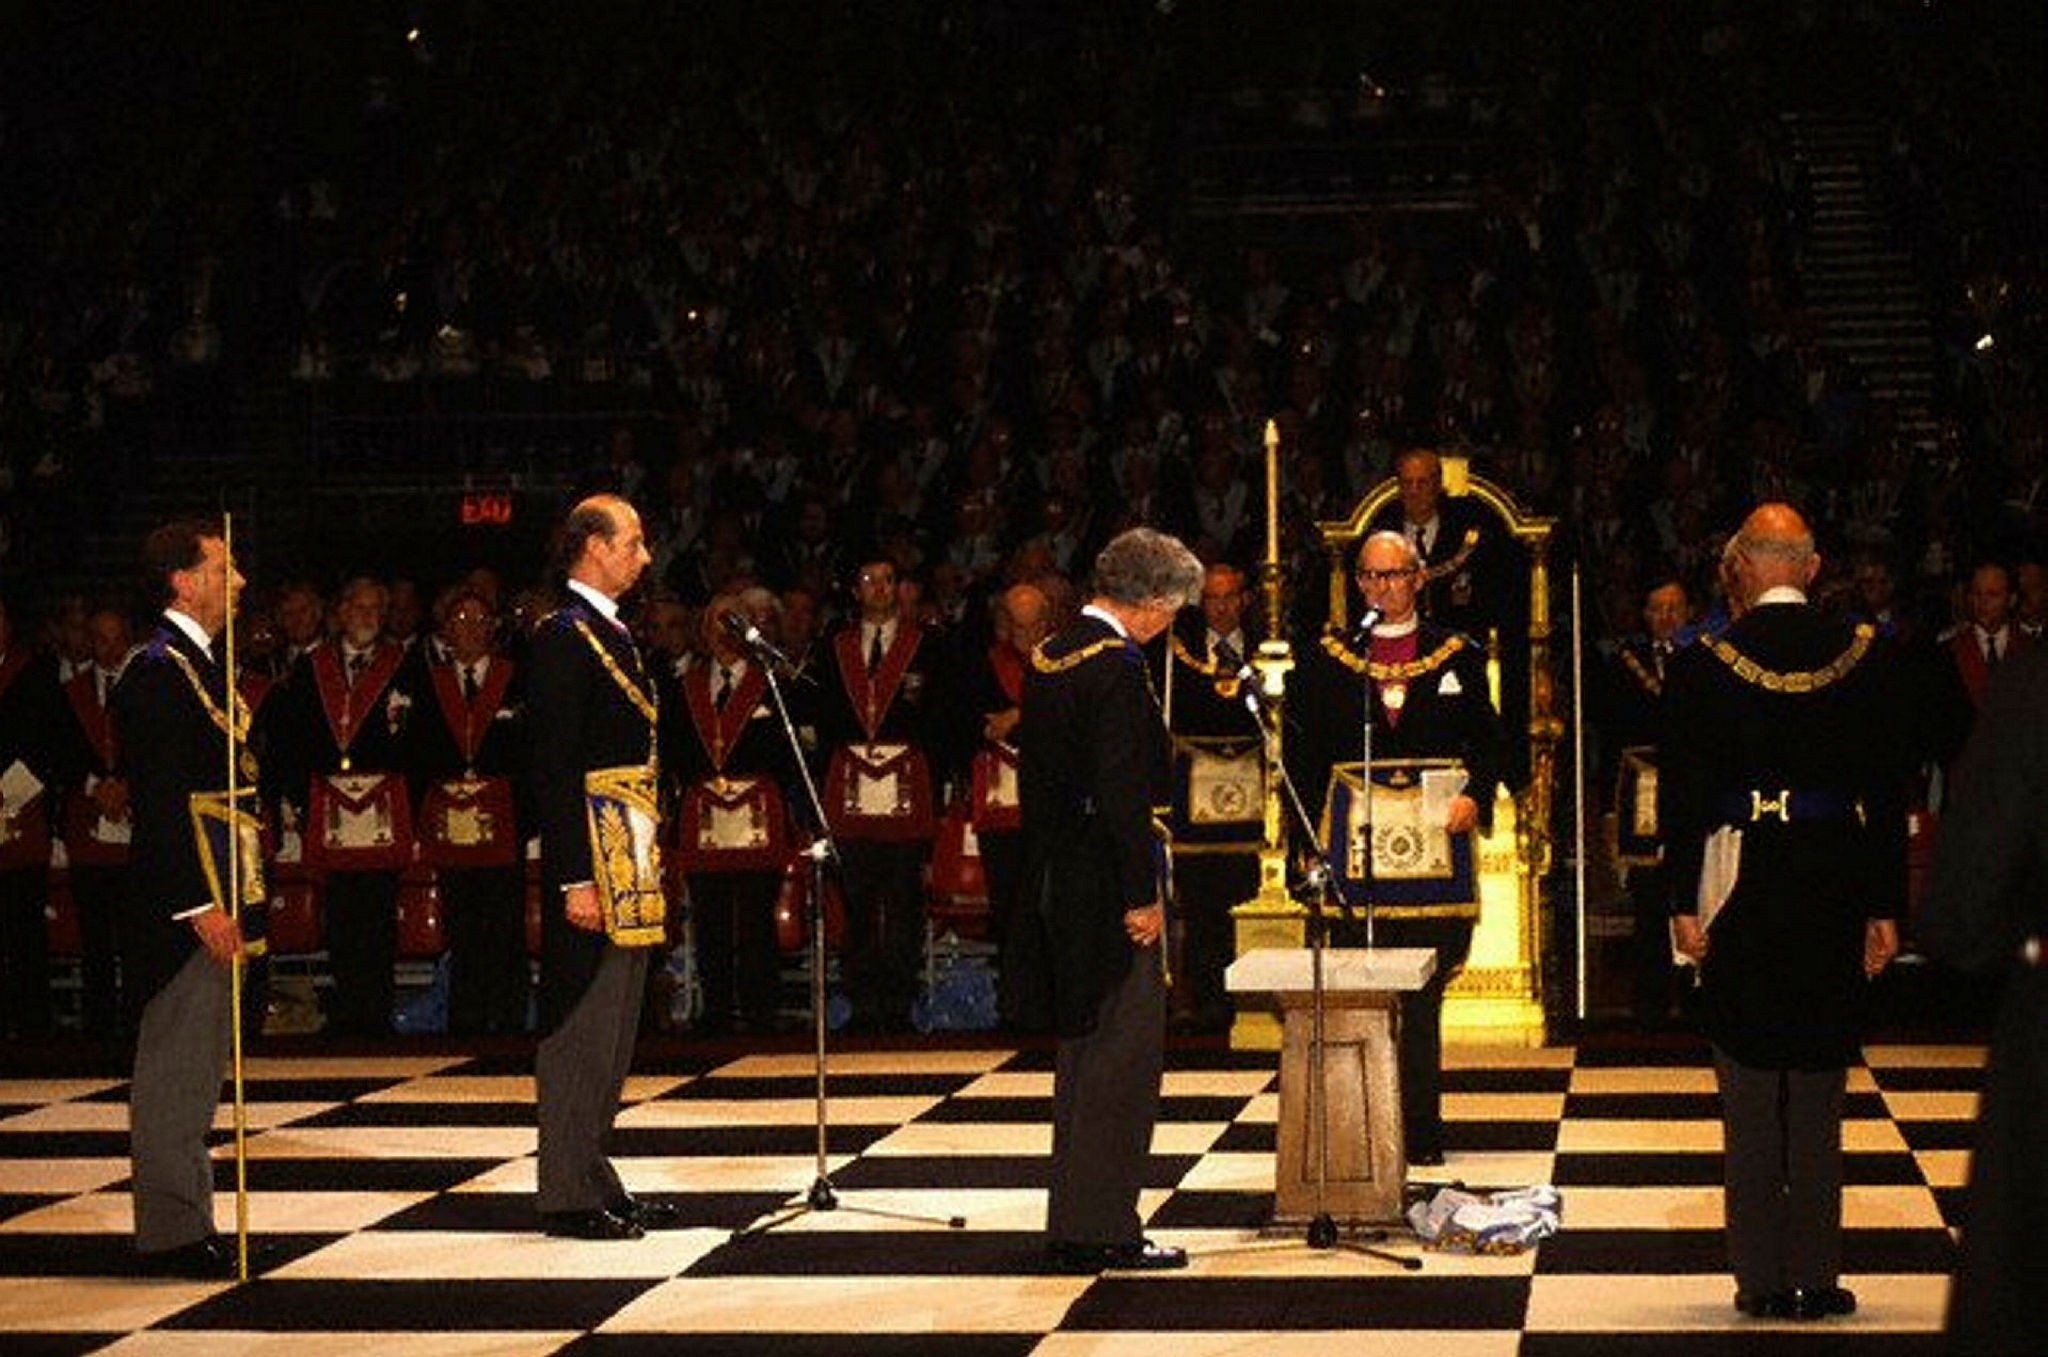 Prince Edward, The Duke of Kent at a Masonic ceremony at Earls Court in London. (File photo / Image by u00a9 Stuart Freedman/In Pictures/Corbis)